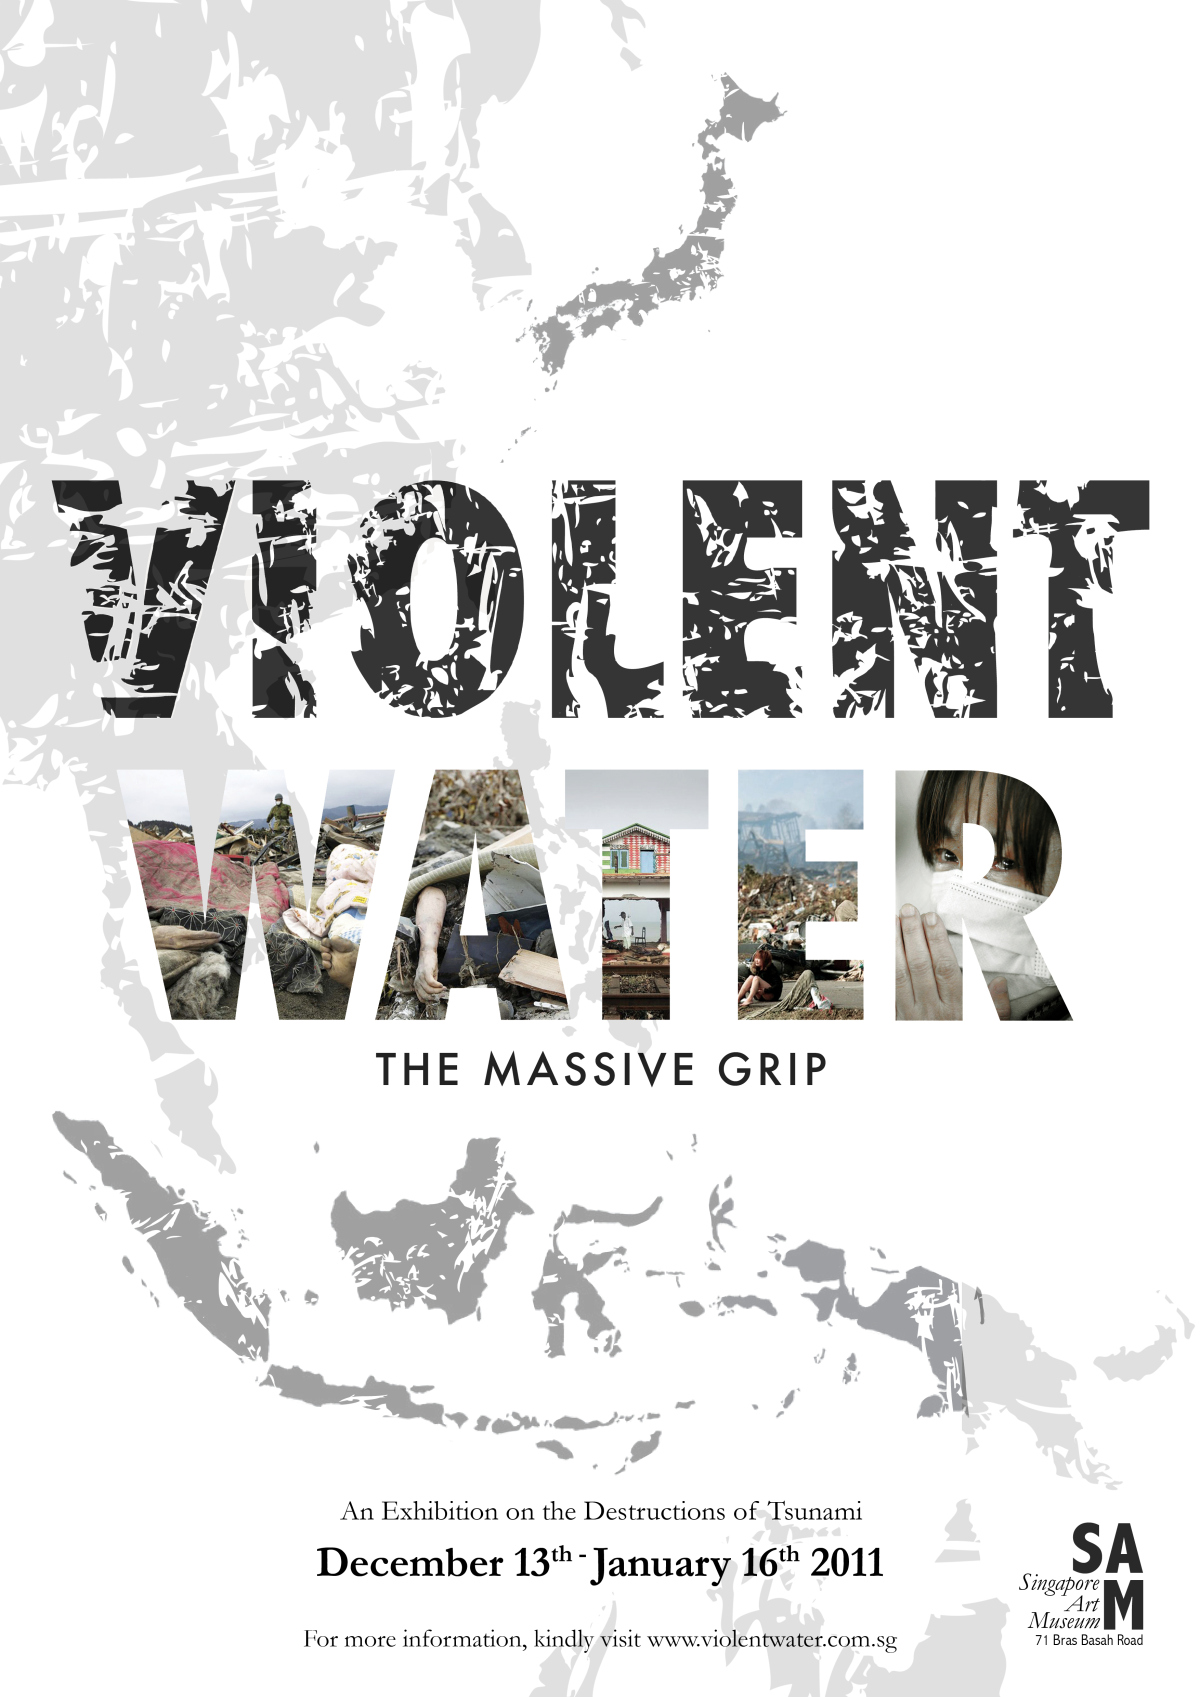 Violent Water: The Massive Grip at NTU ADM Portfolio